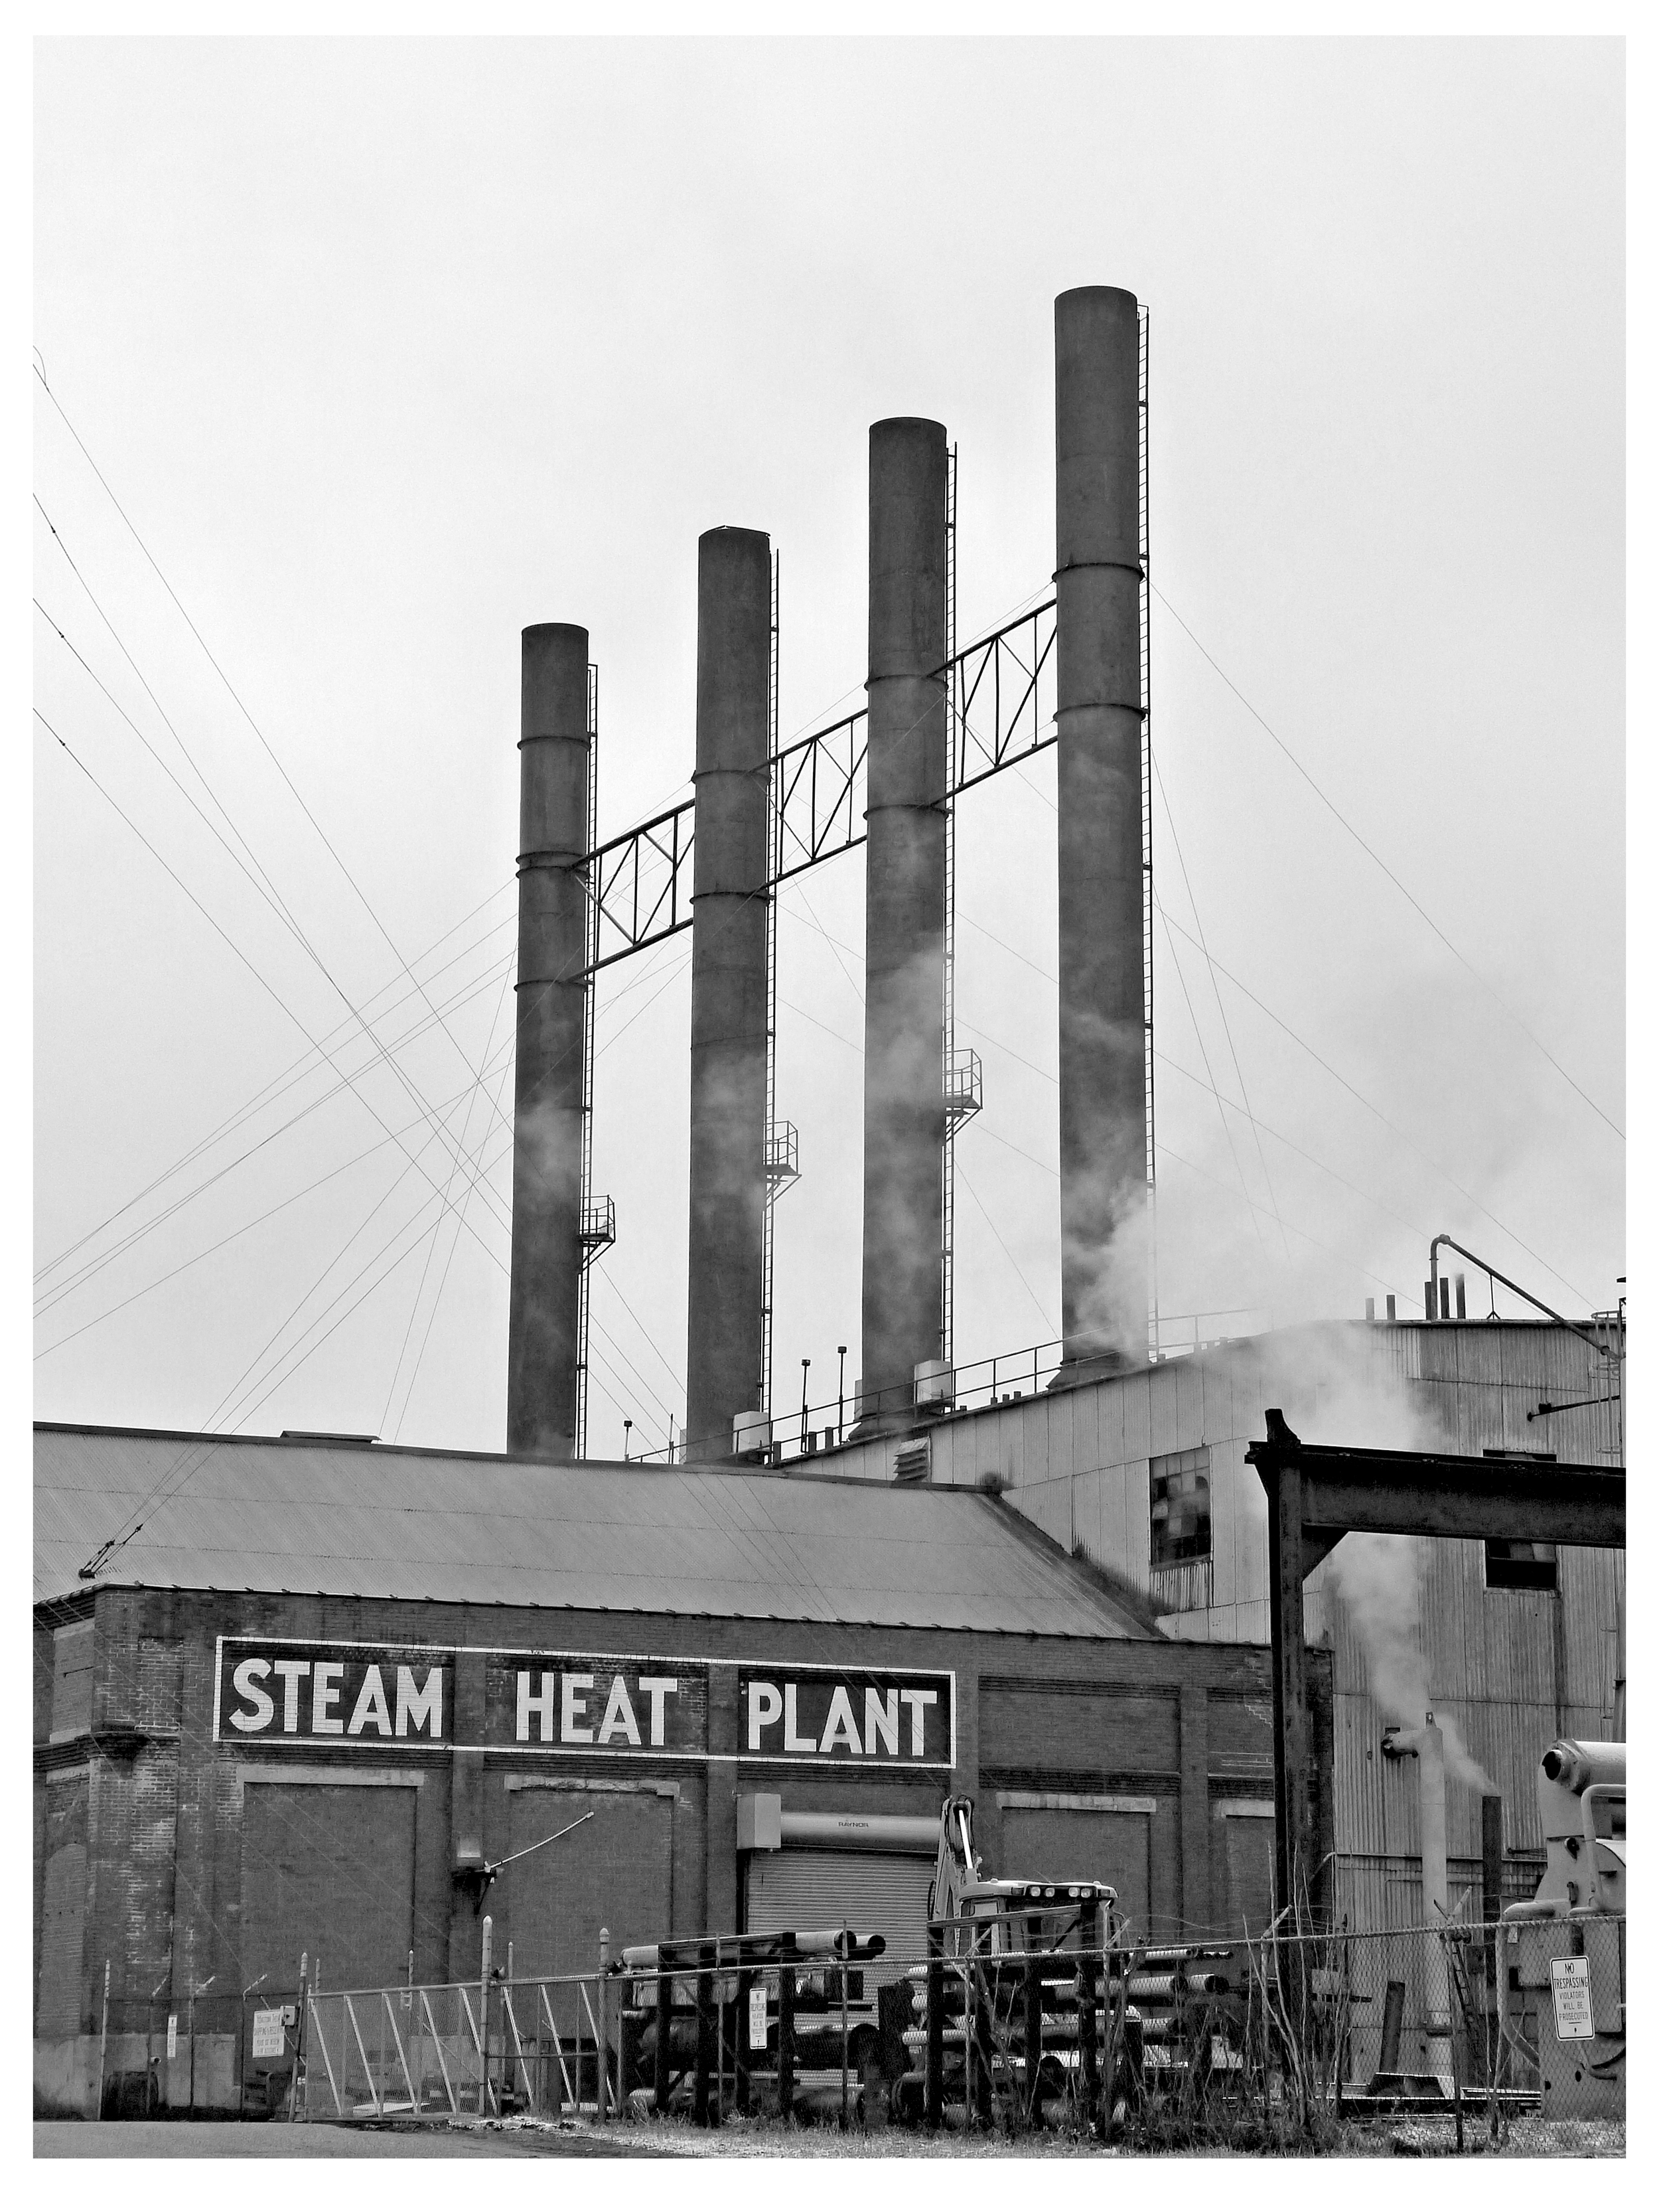 Steam Heat Plant, Youngstown, Ohio